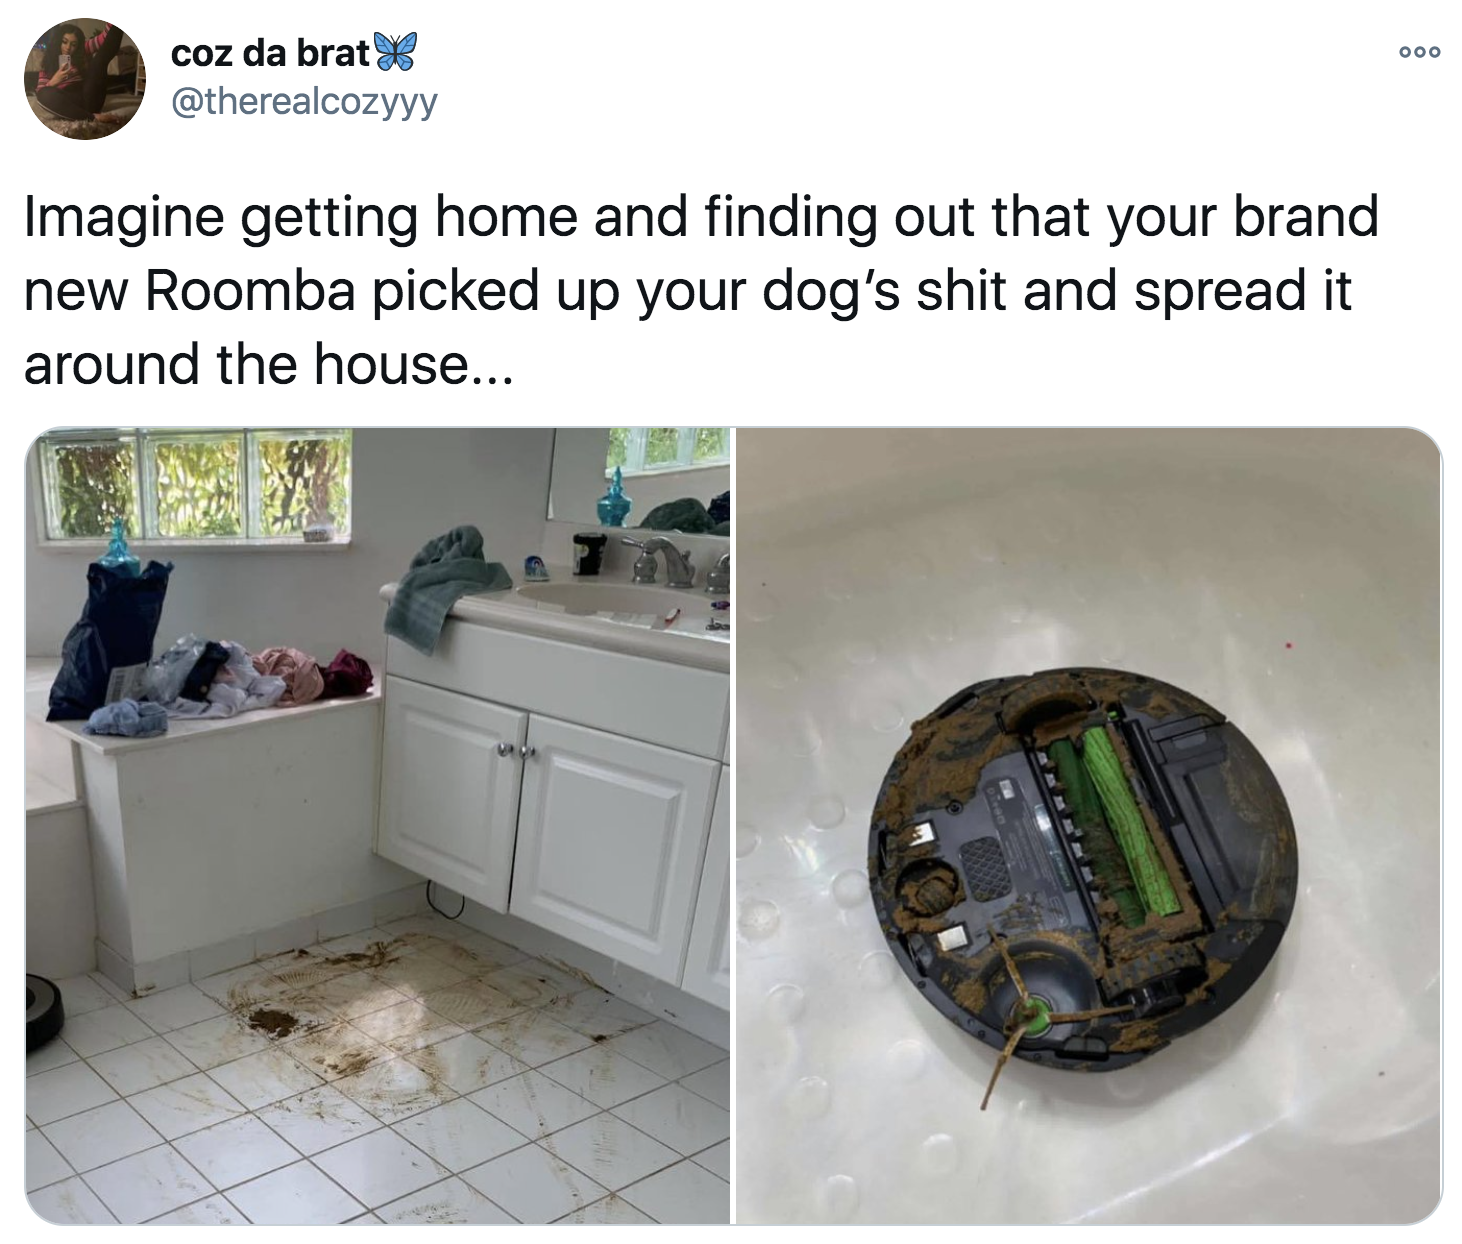 tweet reading Imagine getting home and finding out that your brand new Roomba picked up your dog's shit and spread it around the house...